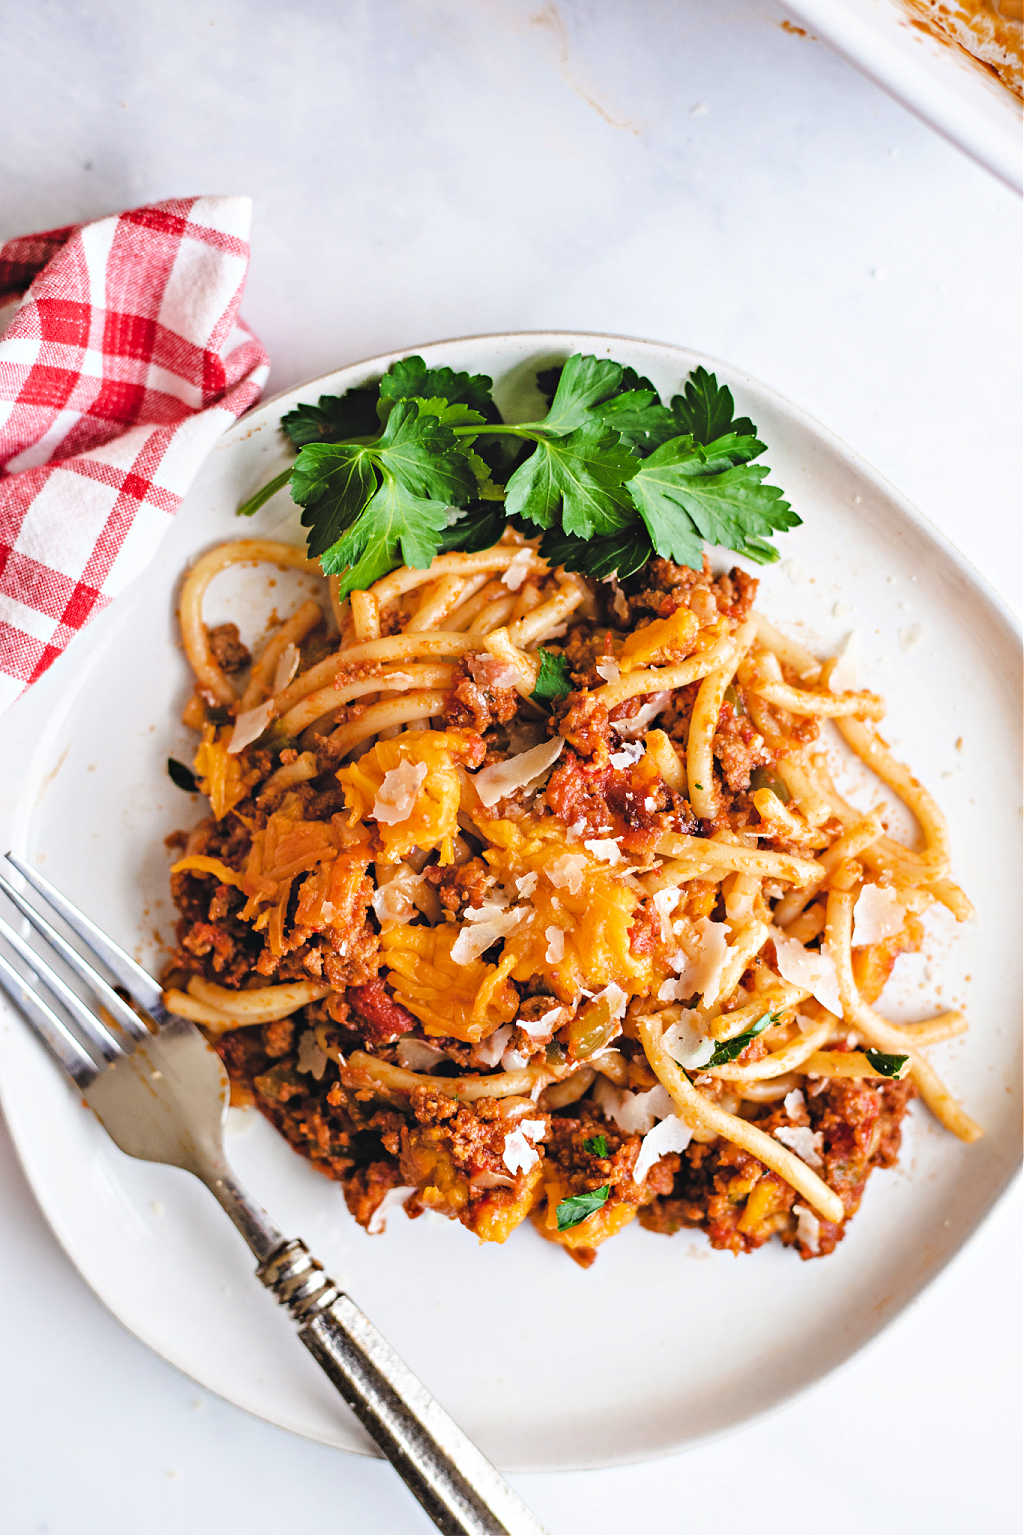 baked spaghetti on a white plate with a fork and red checkered napkin on a table.